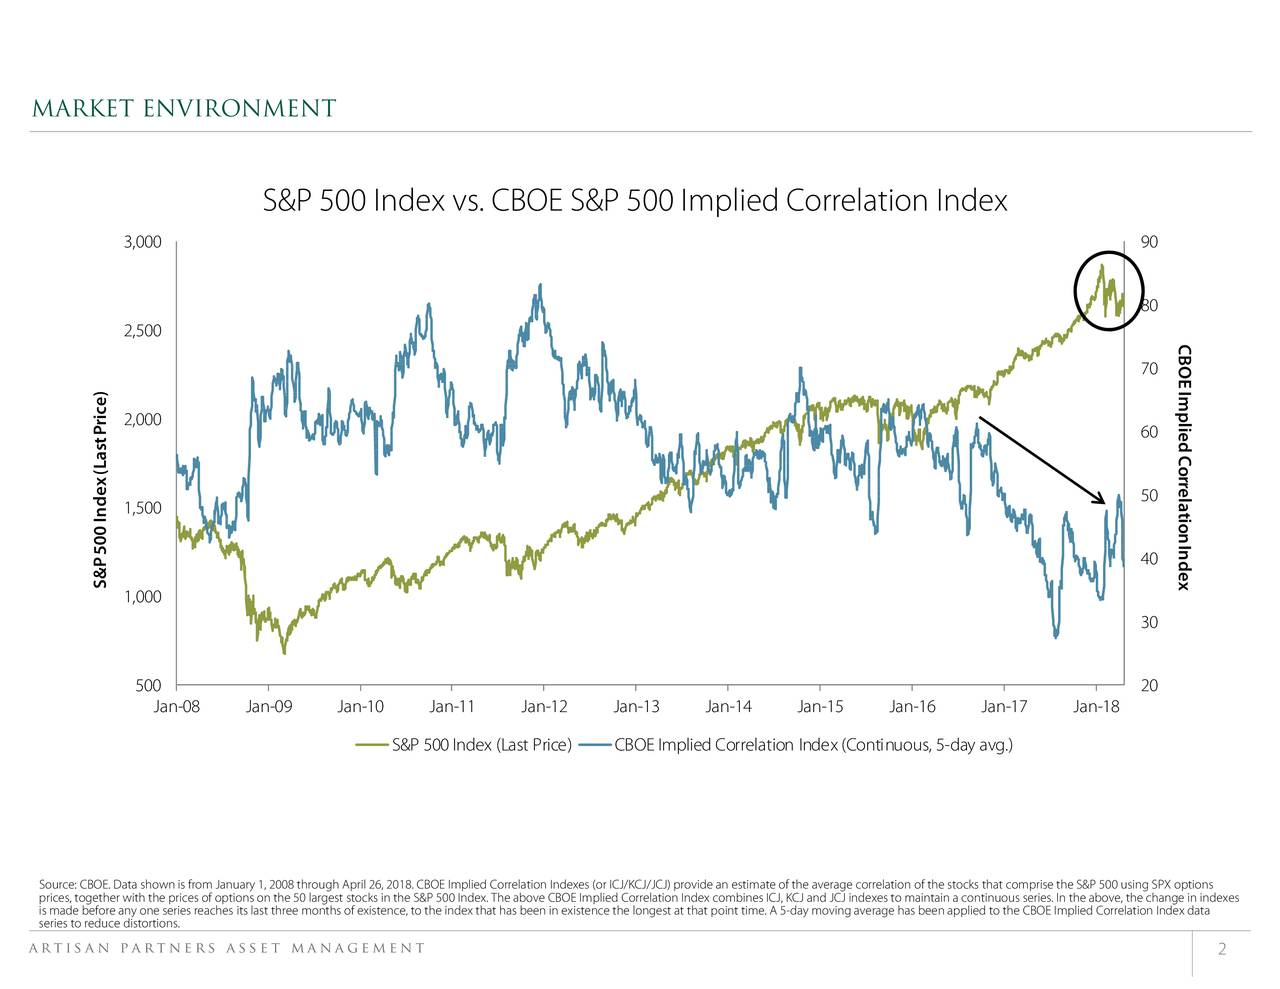 CBOE Implied CorrelationIndex 90 80 70 60 50 40 30 20 the above, the change in indexes rise the S&P 500 using SPX options to maintain a continuous series. In rrelation of the stocks that comp average has been applied to the CBOE Implied Correlation Index data iddex combines ICJ, KCJ and JCJ indexes t that point time. A 5-day moving CBOE Implied Correlation Index (Continuous, 5-day avg.) r ICJ/KCJ/JCJ) prov above CBOE Implied Correlation In Correlation Indexes (o S&P 500 Index (Last Price) ocks in the S&P 500 Index. The S&P 500 Index vs. CBOE S&P 500 Implied Correlation Index 1, 2008 through April 26, 2018. CBOE Implied of options on the 50 largest st Jan-08 Jan-09 Jan-10 Jan-11 Jan-12 500 3,000 2,500 2,000 1,500 1,000 S&P500 Index(LastPrice) MARKET ENVIRONMENT Sopris maartisan partners asset managementits last three months of existence, to the index that has been in existence the longest a